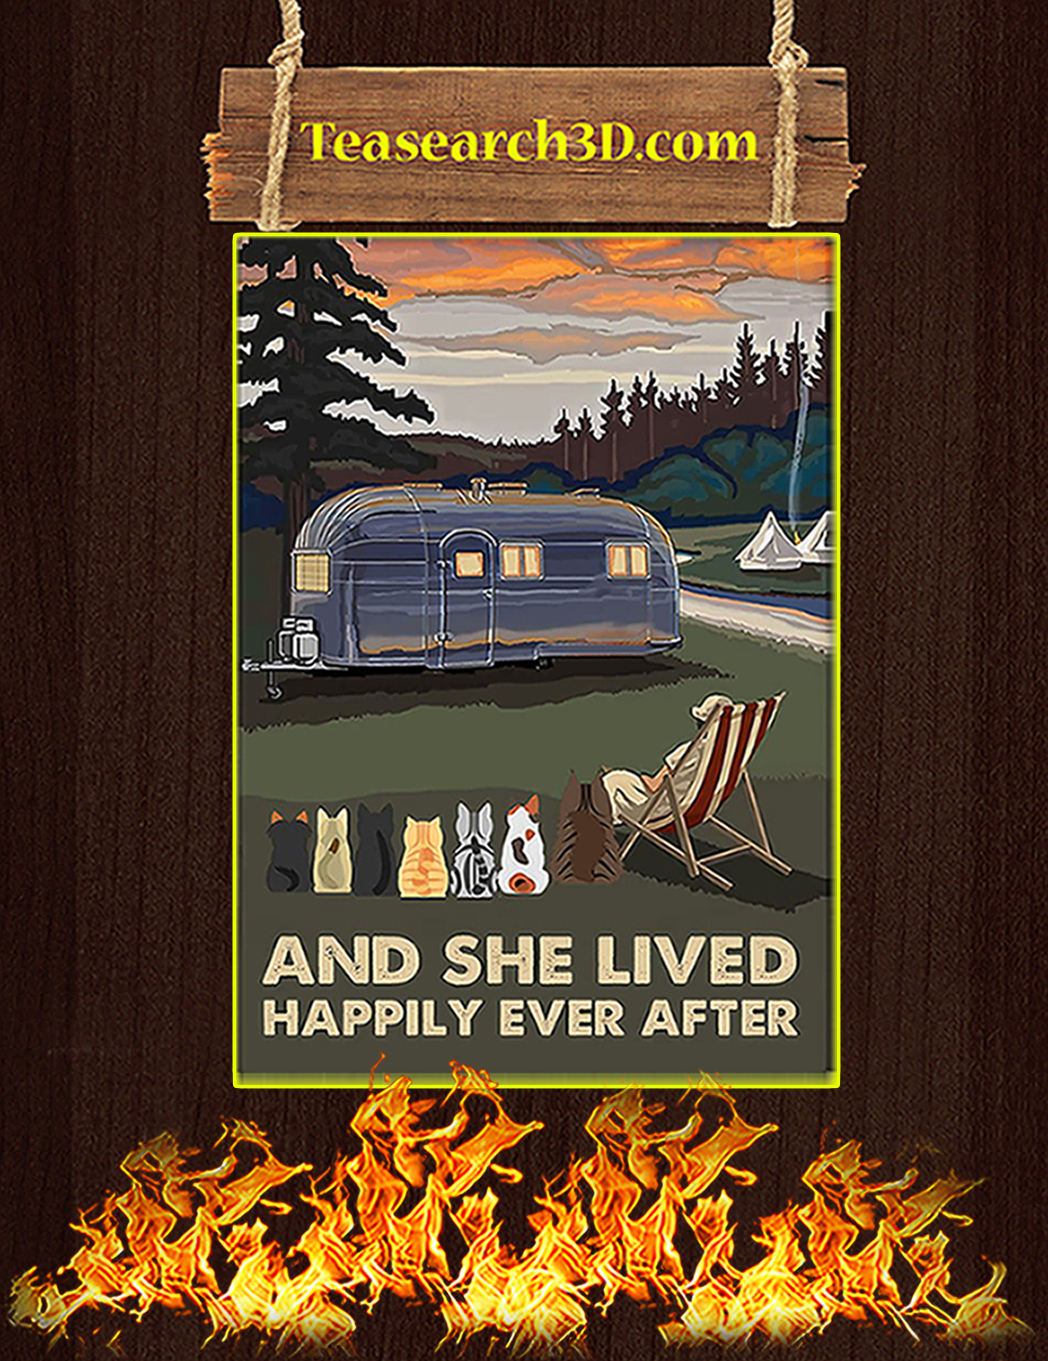 Camping cats and she lived happily ever after poster A1